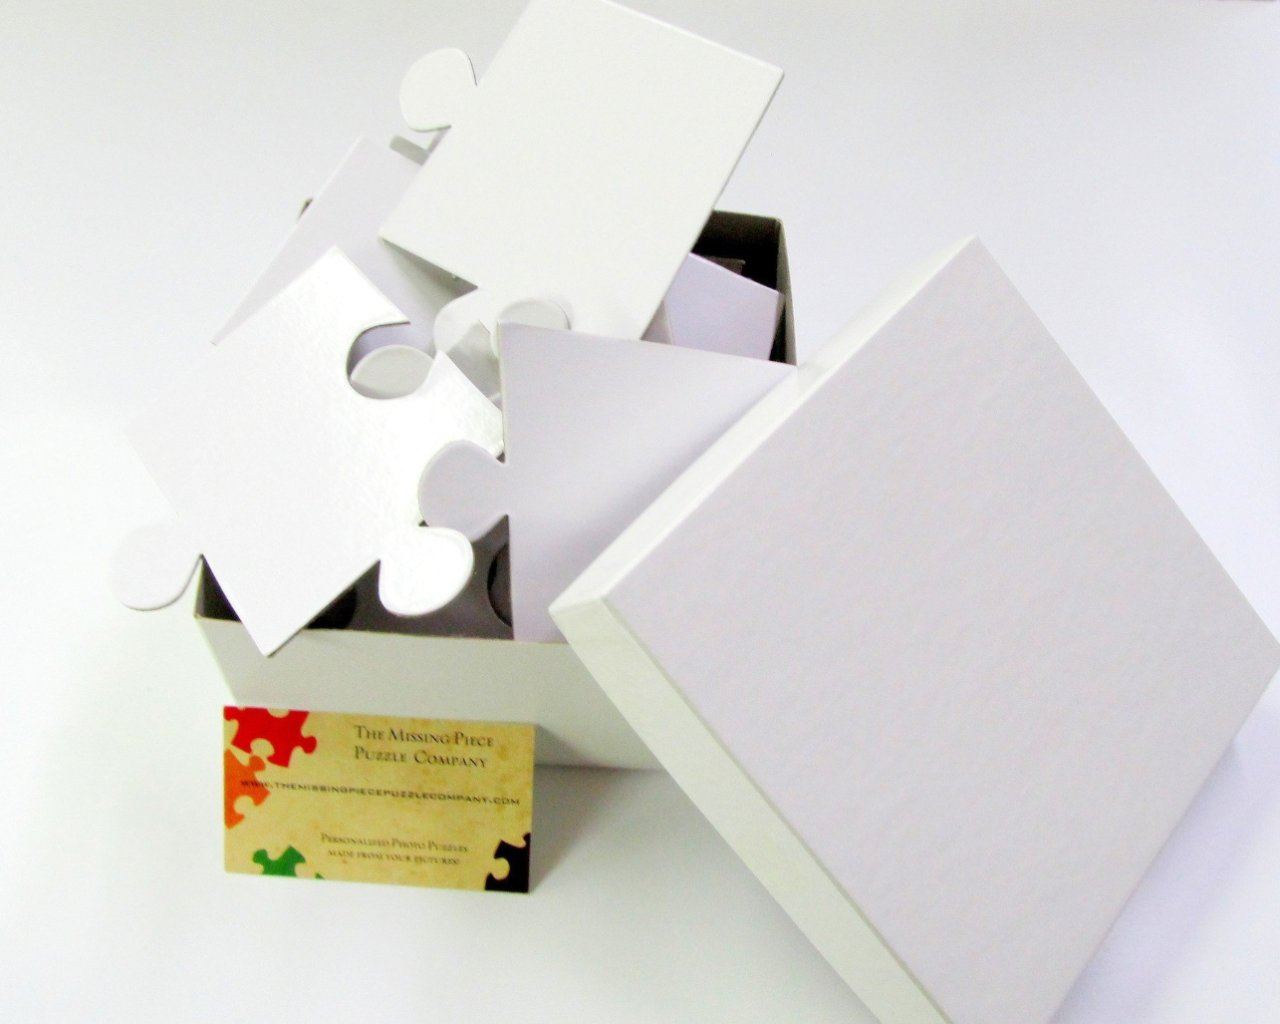 Wedding - White Wedding Guest Book Puzzle With 30 Extra Large Puzzle Pieces